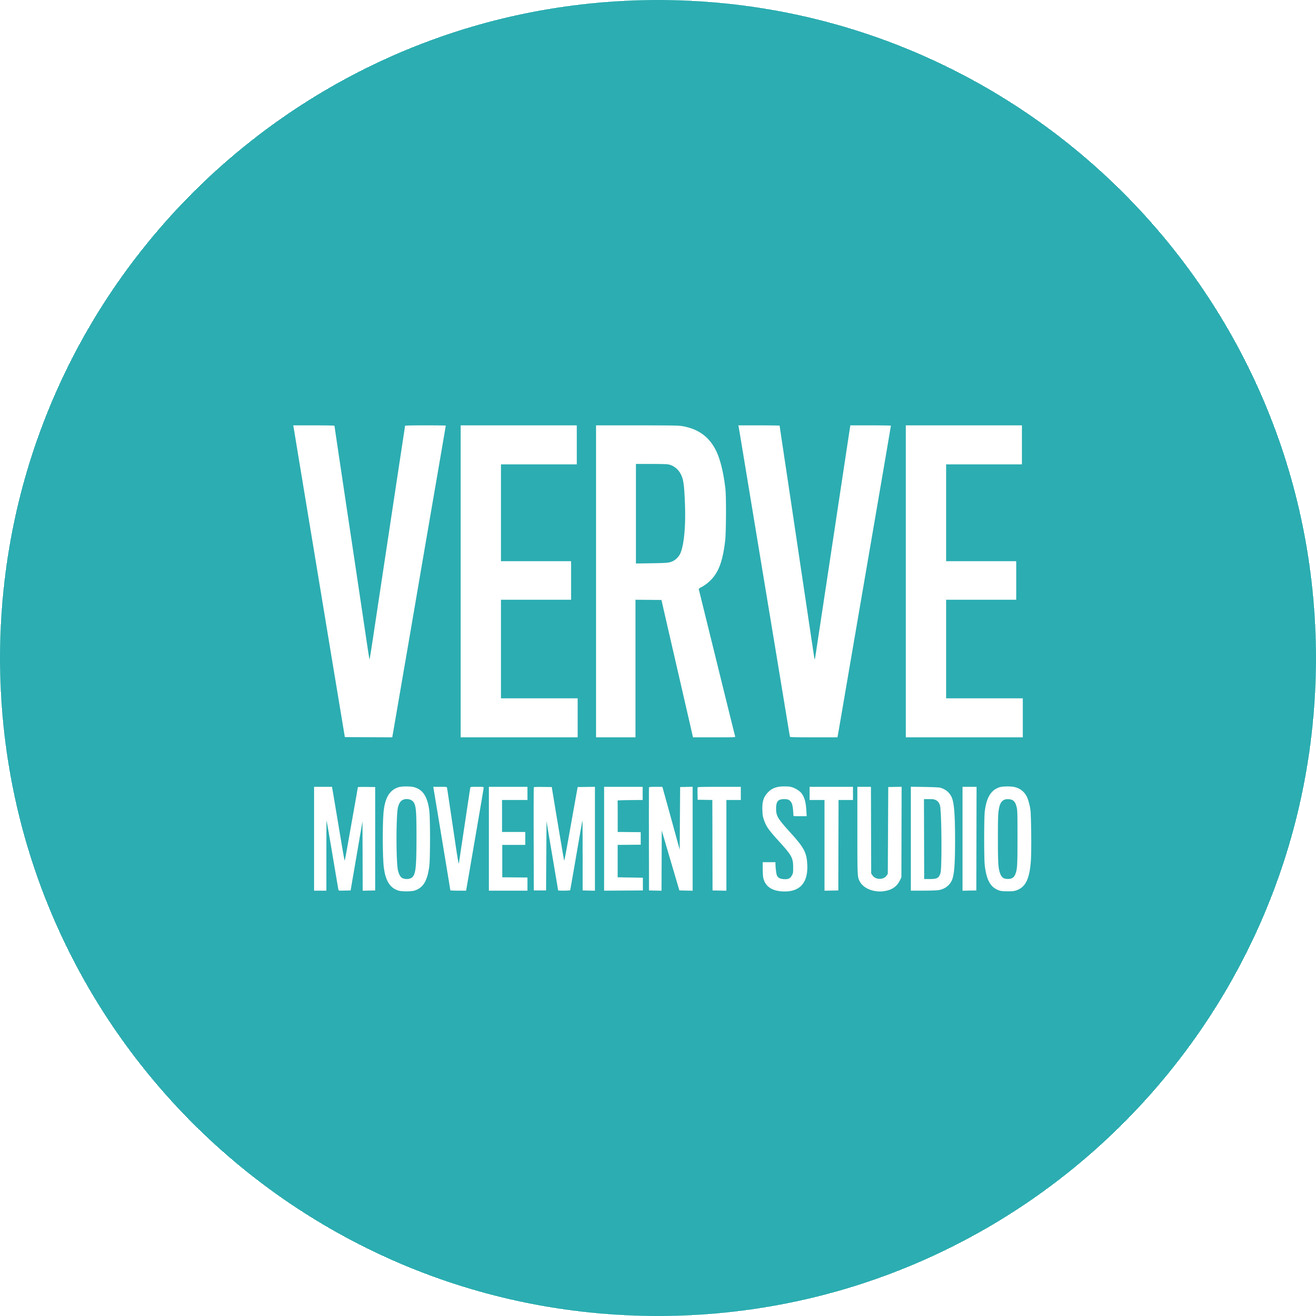 Verve Movement Studio